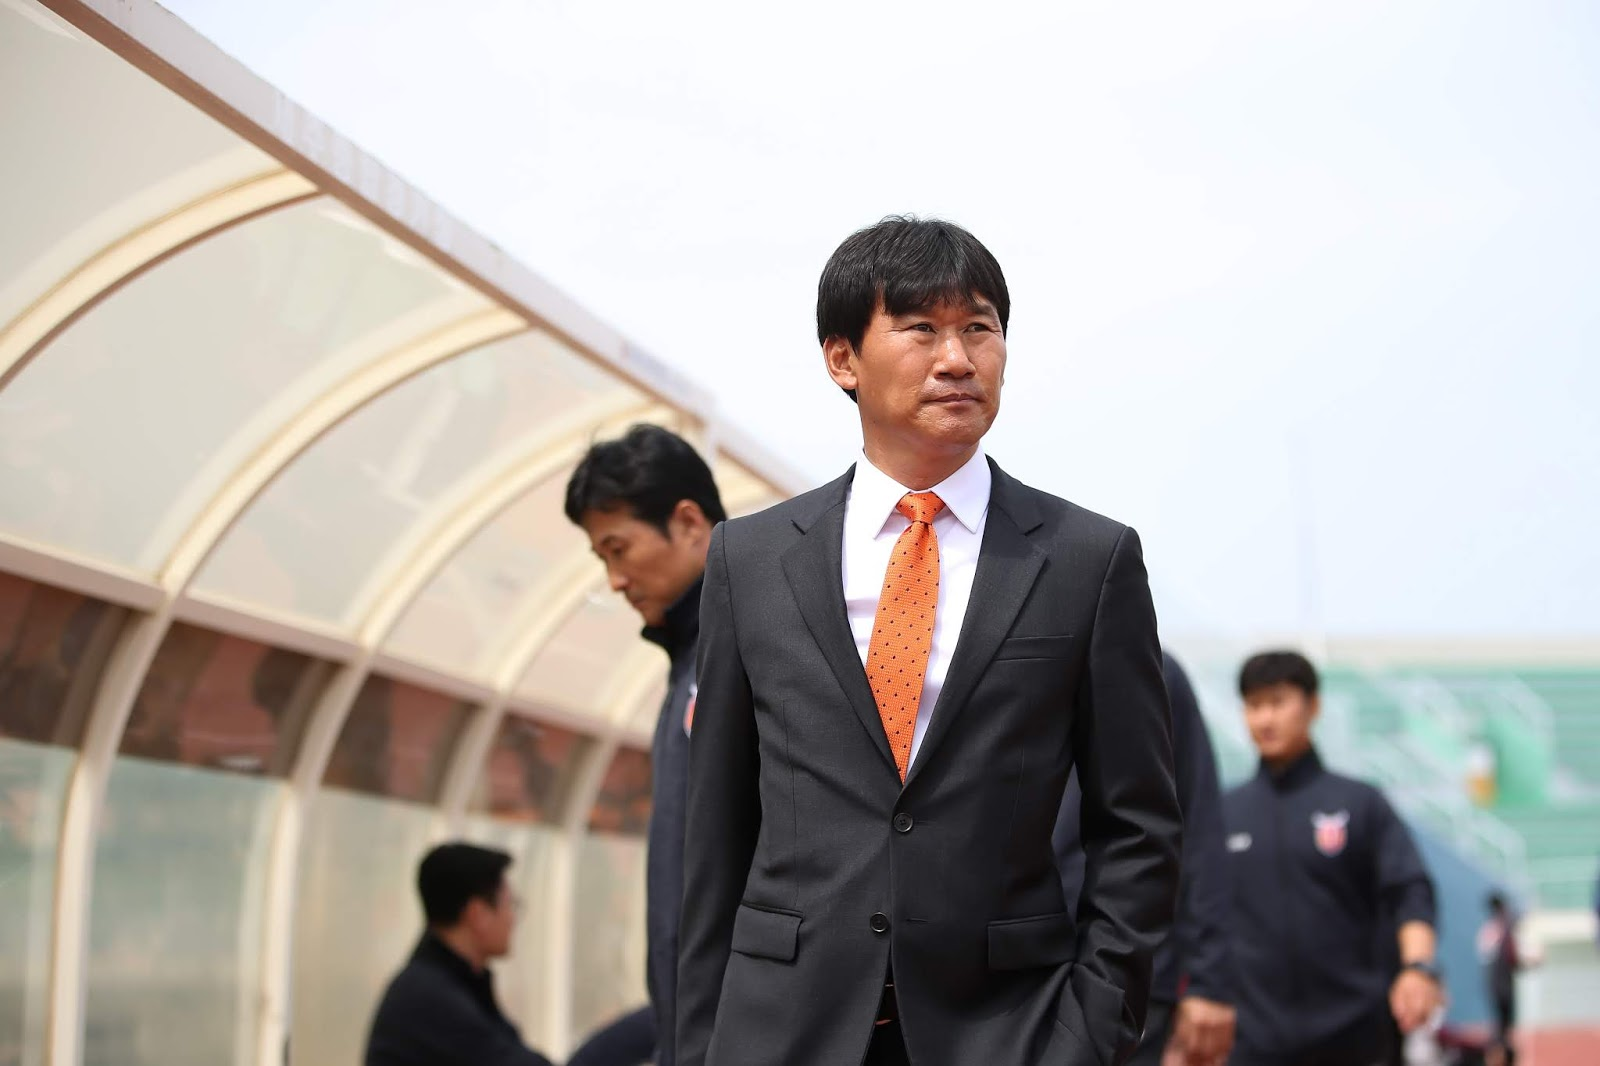 News: Jeju United Manager Cho Sung-hwan Steps Down, Choi Yun-kyum Named as His Replacement